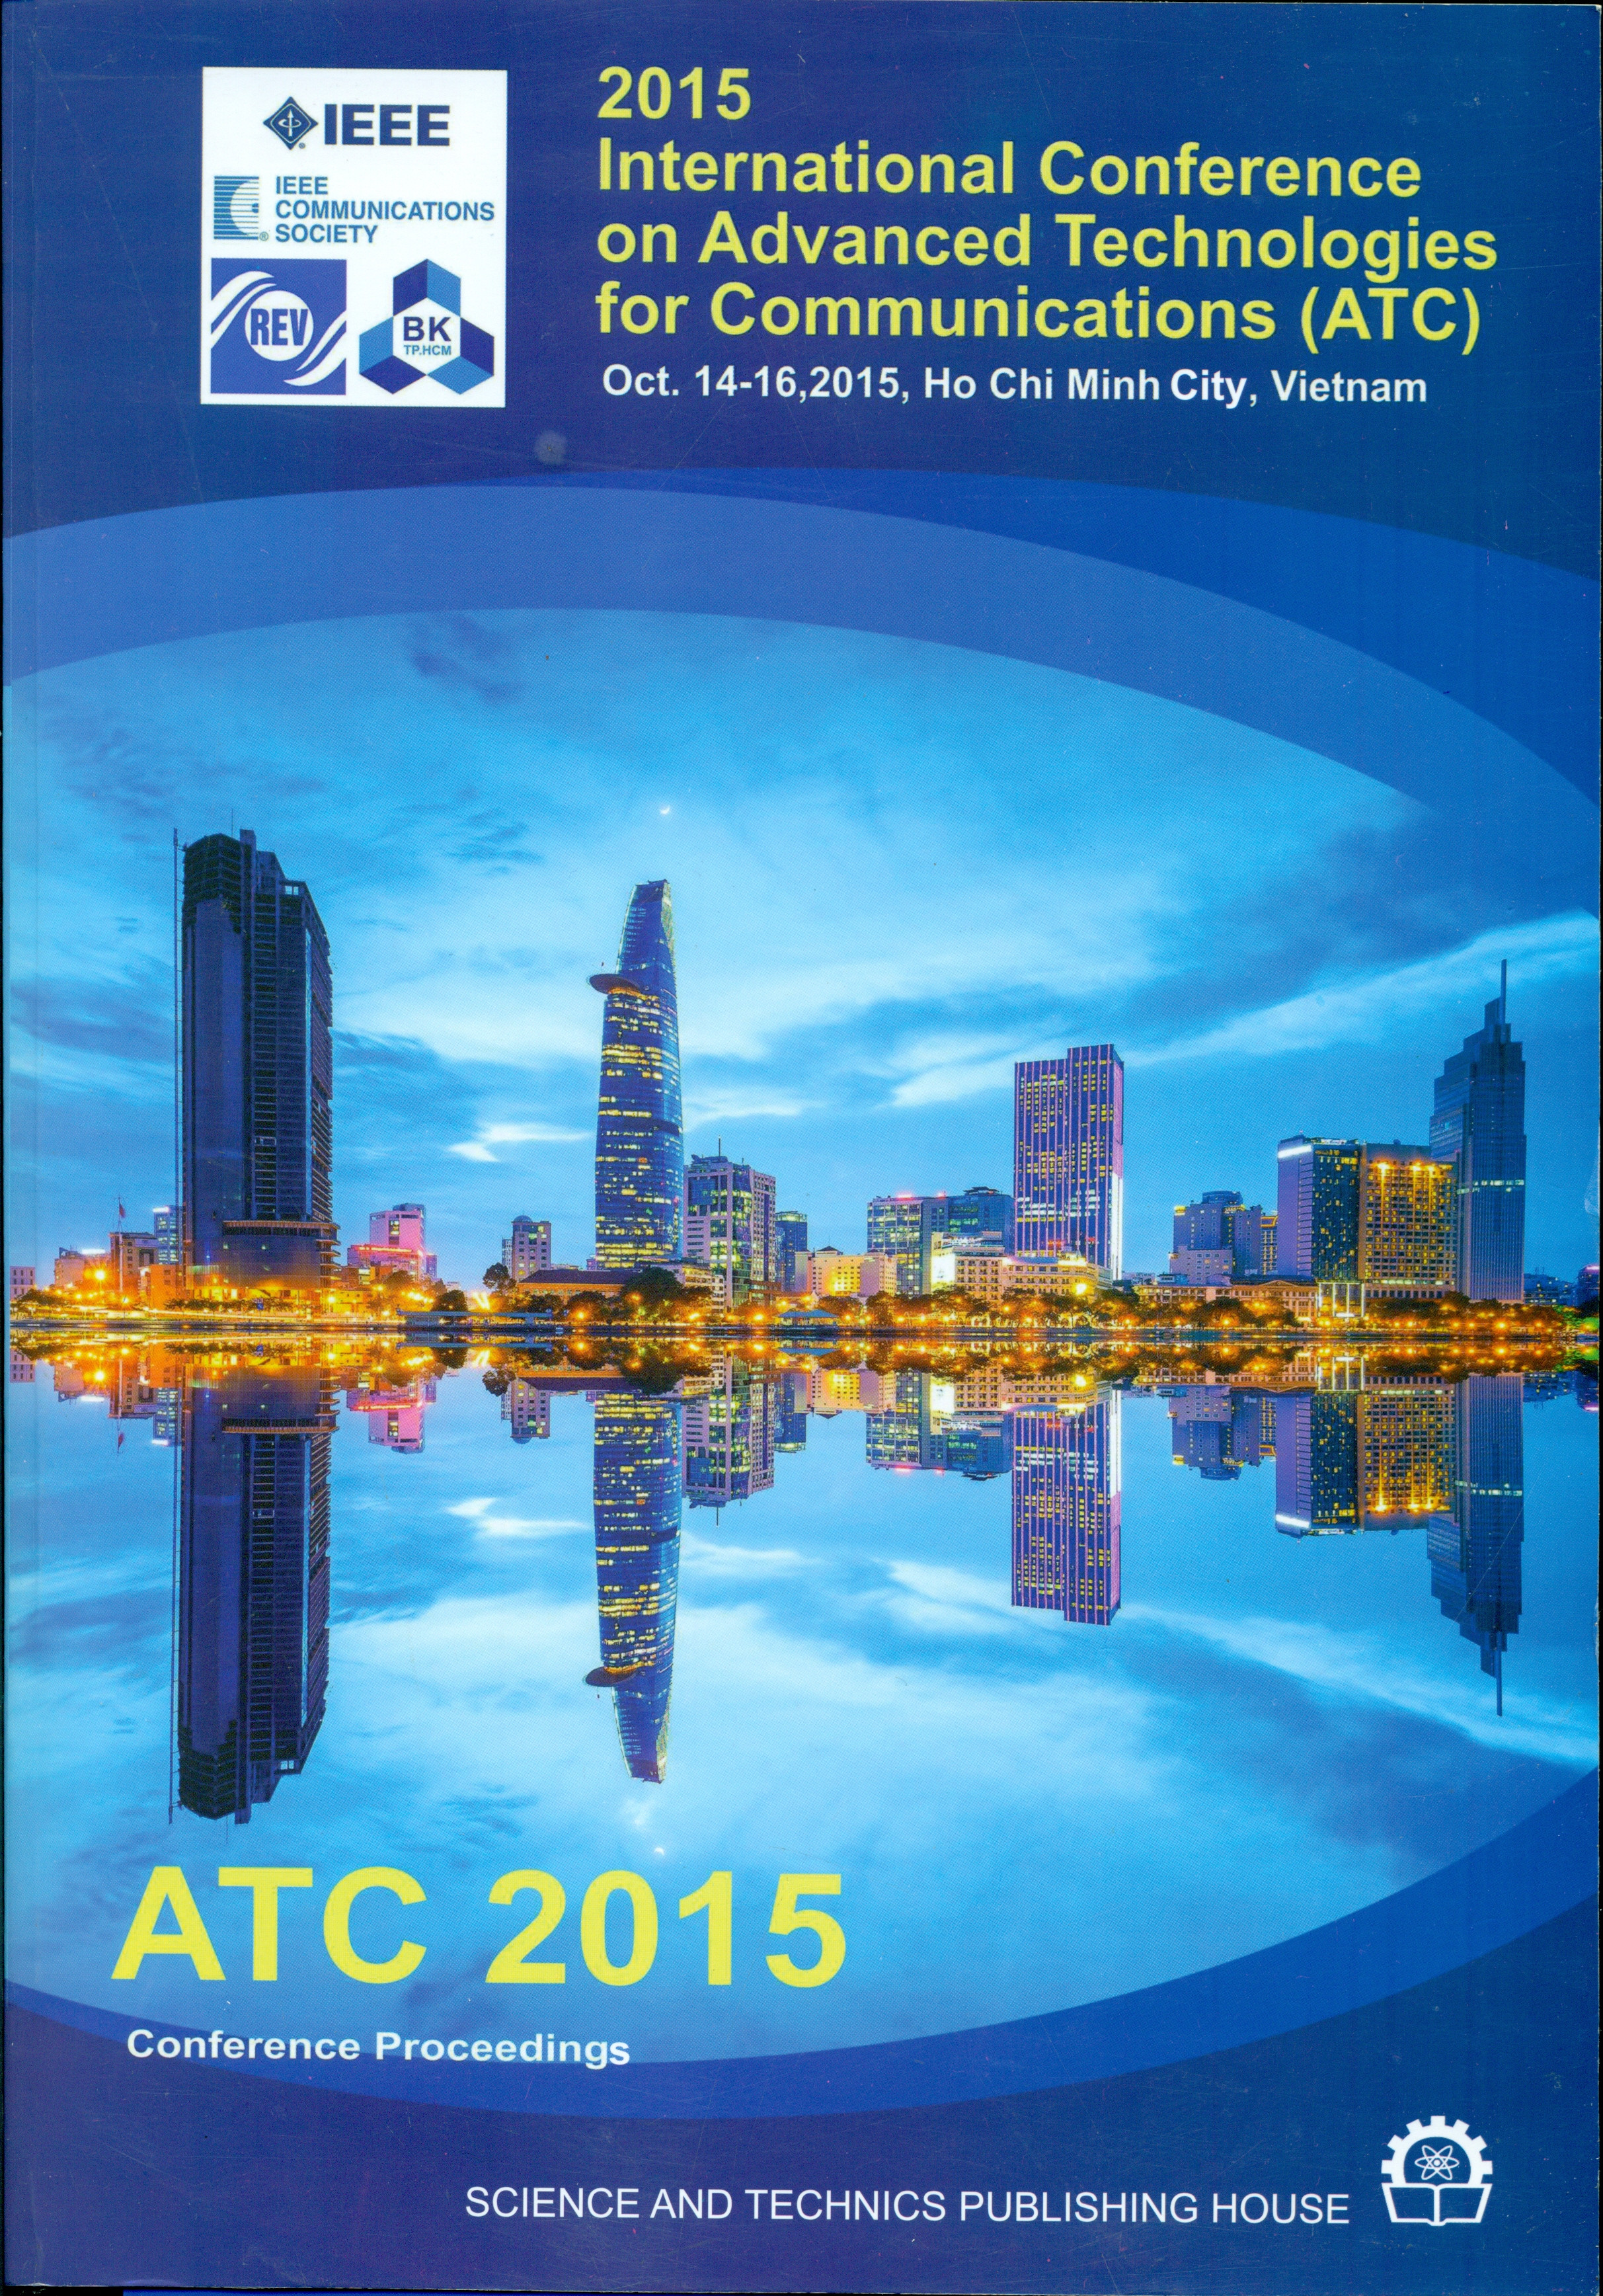 2015 Internationl Conference on Advanced Technologies for Communications (ATC)_0